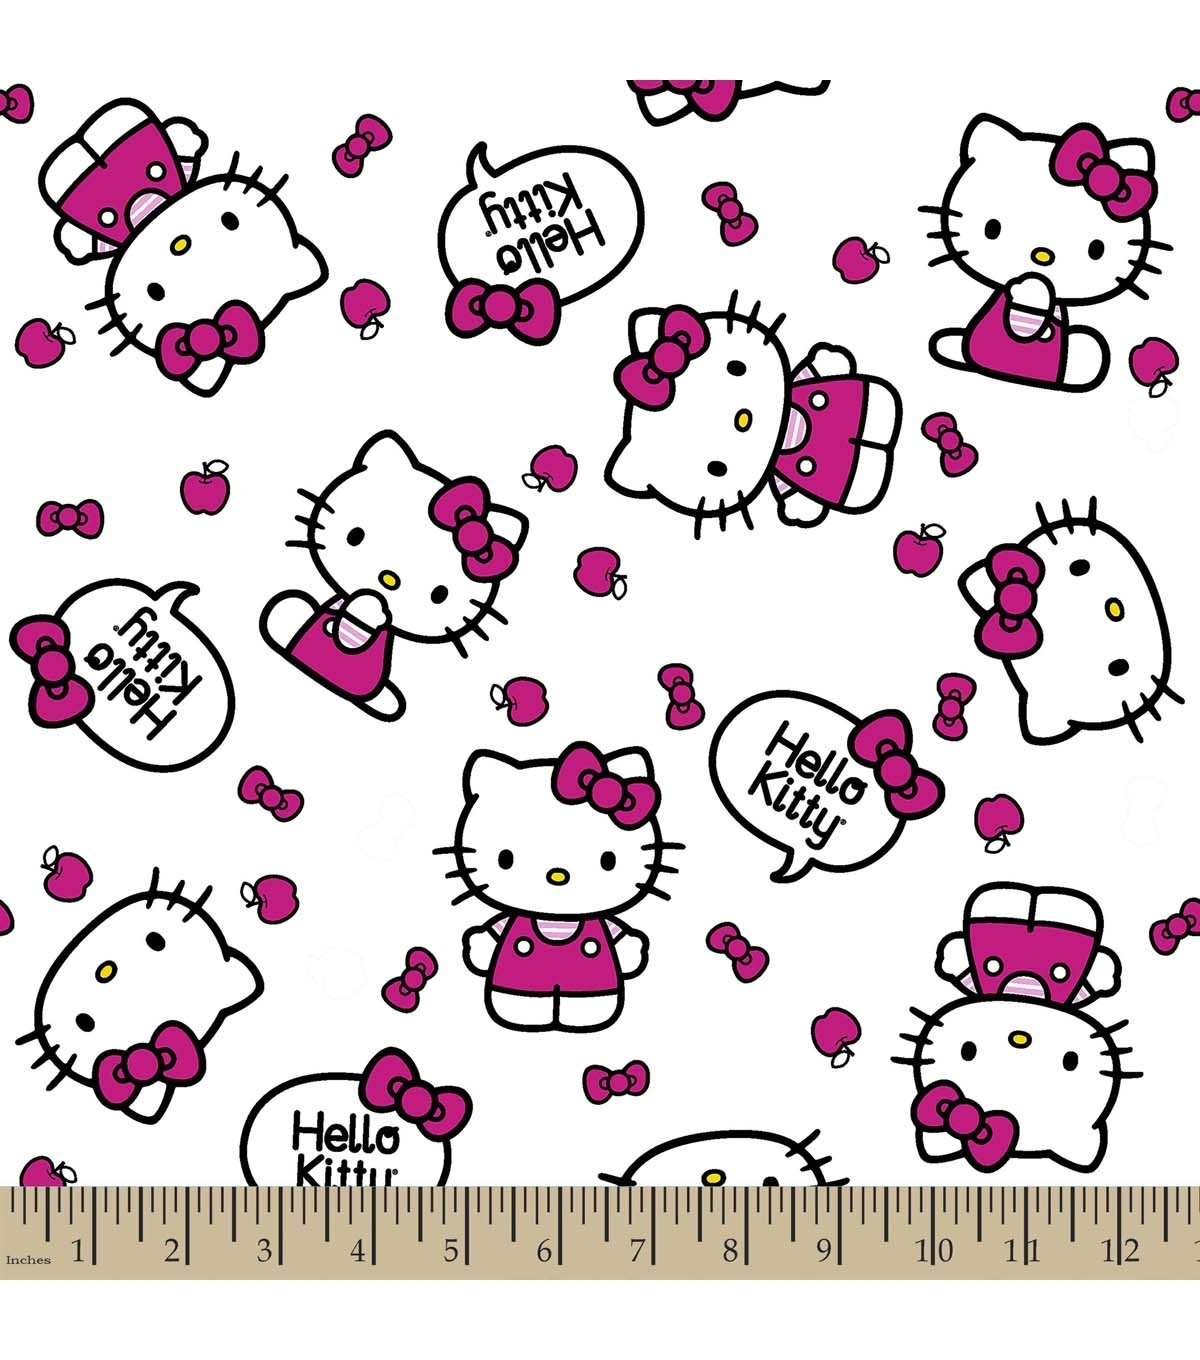 Sanrio Hello Kitty Print Fabric Quote | Joann Inside Most Recently Released Hello Kitty Canvas Wall Art (Gallery 12 of 15)